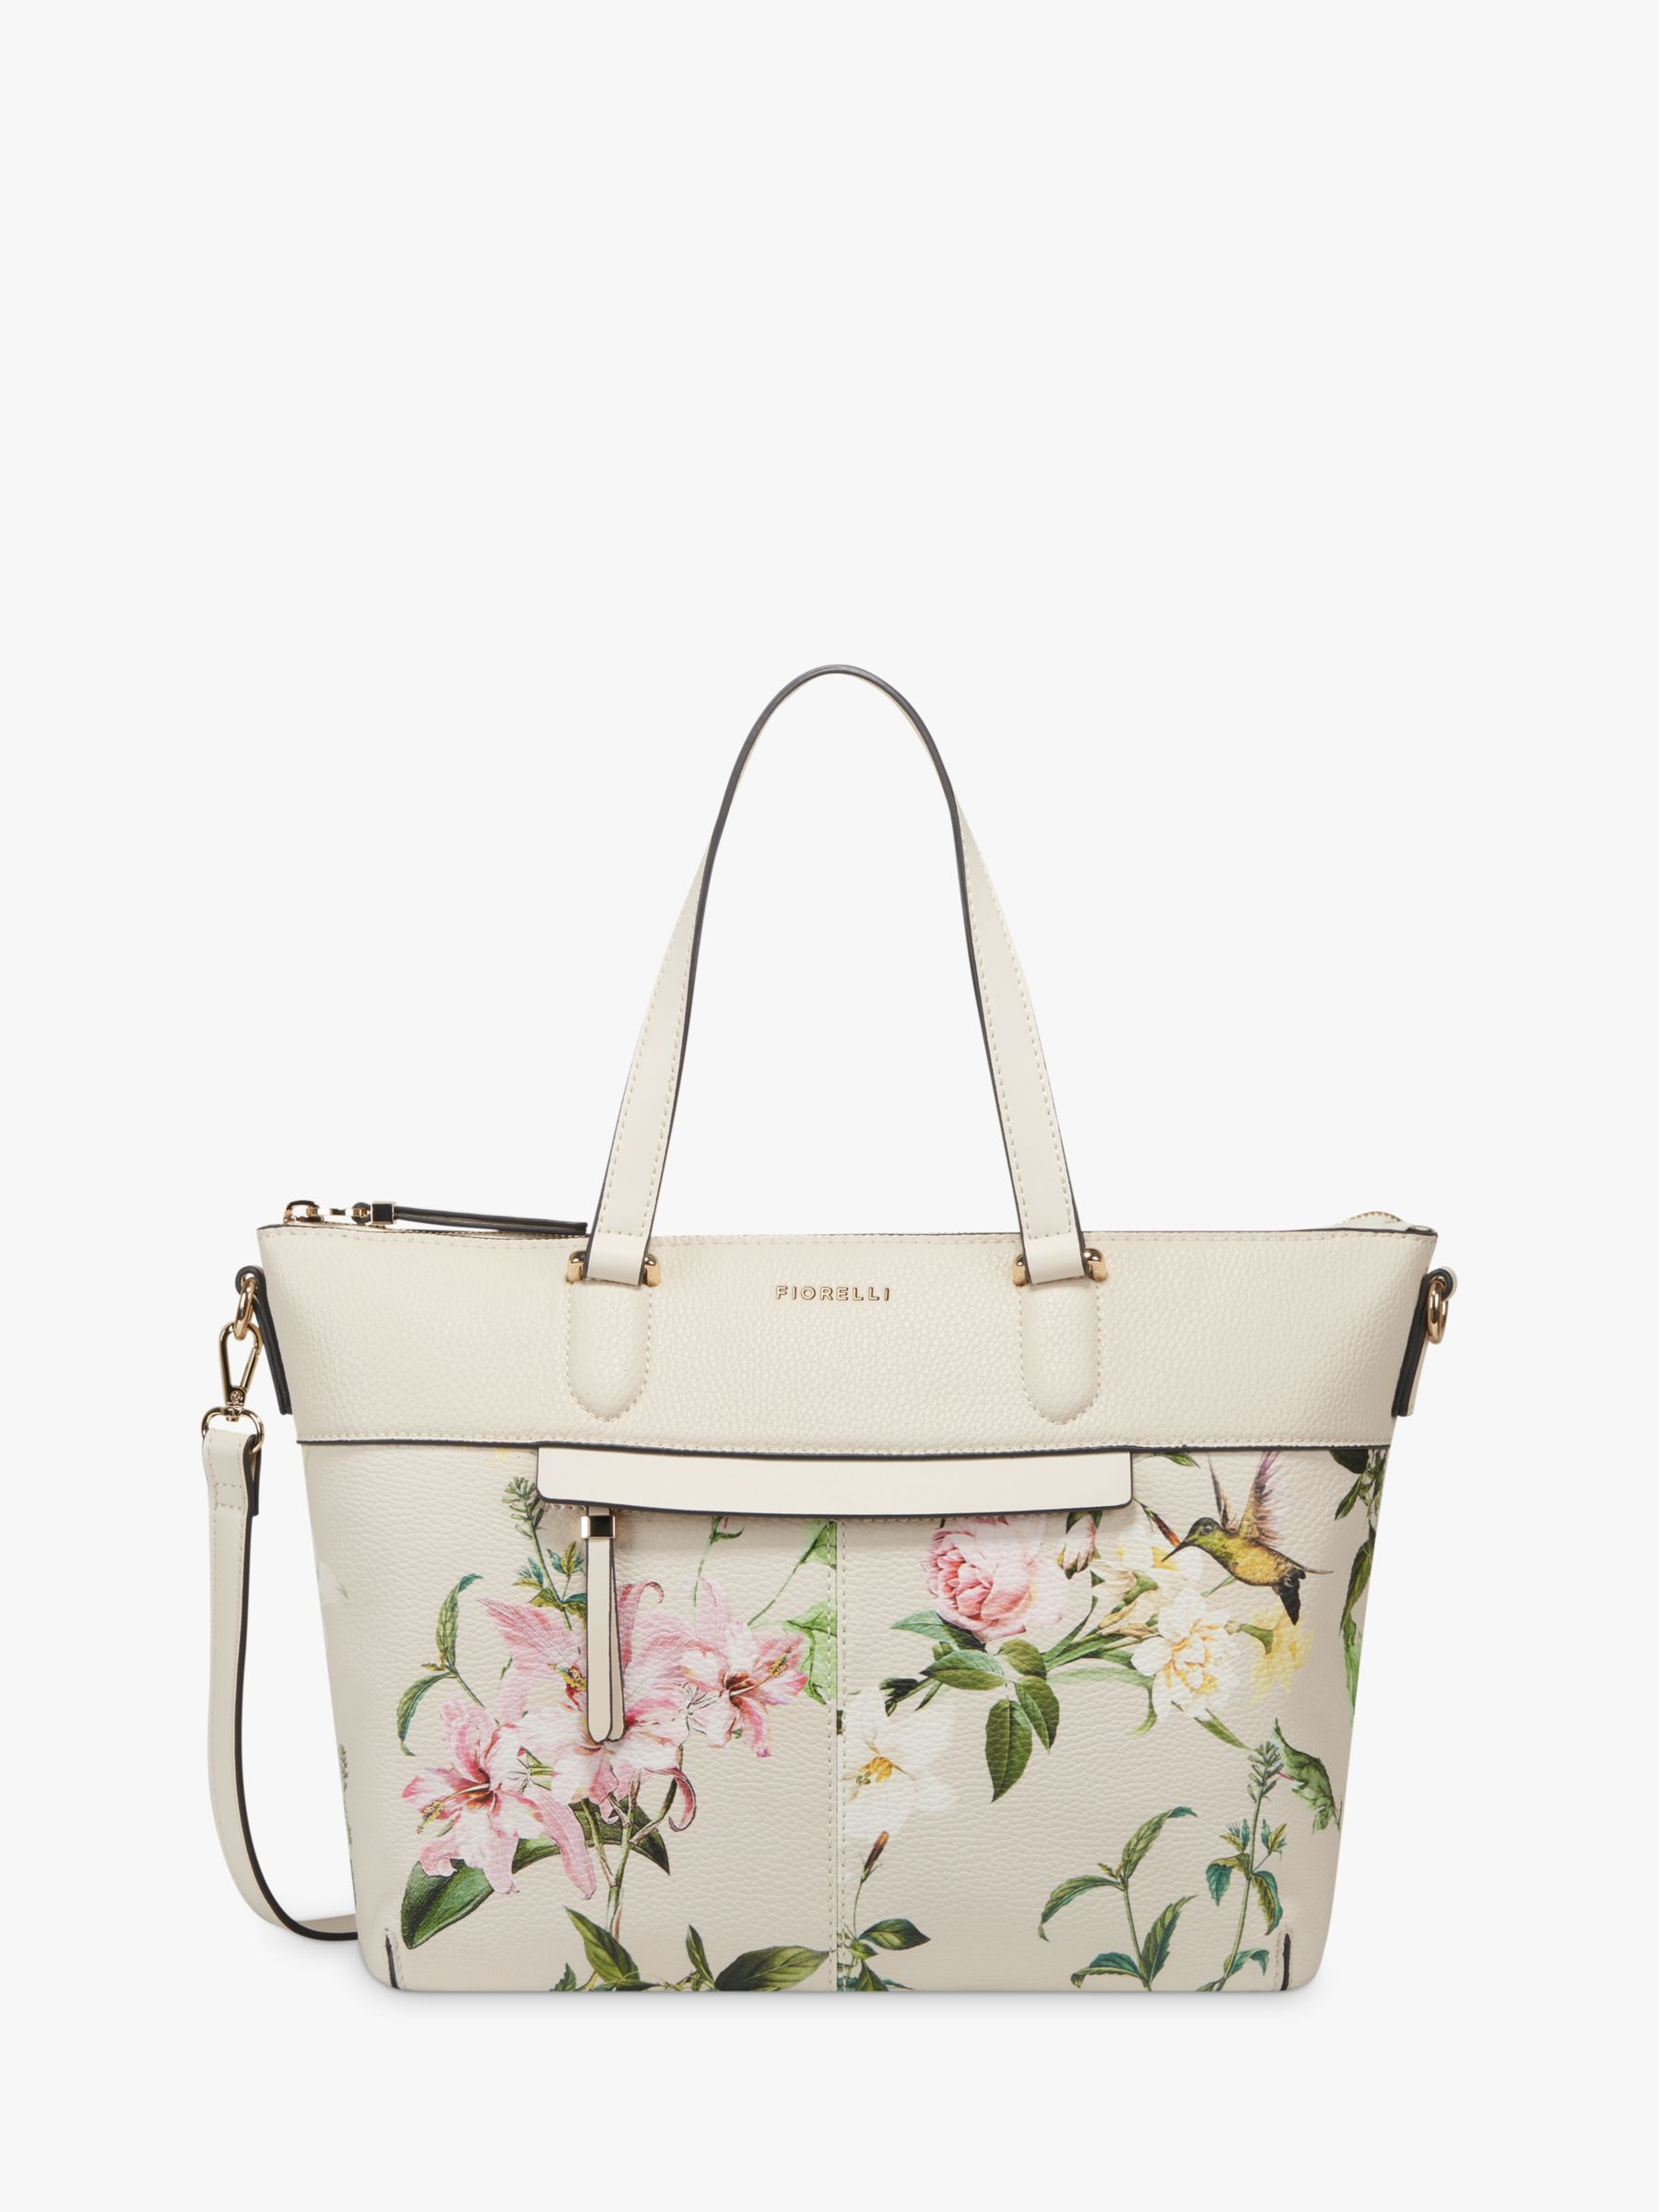 Fiorelli Fiorelli Chelsea Medium Grab Bag